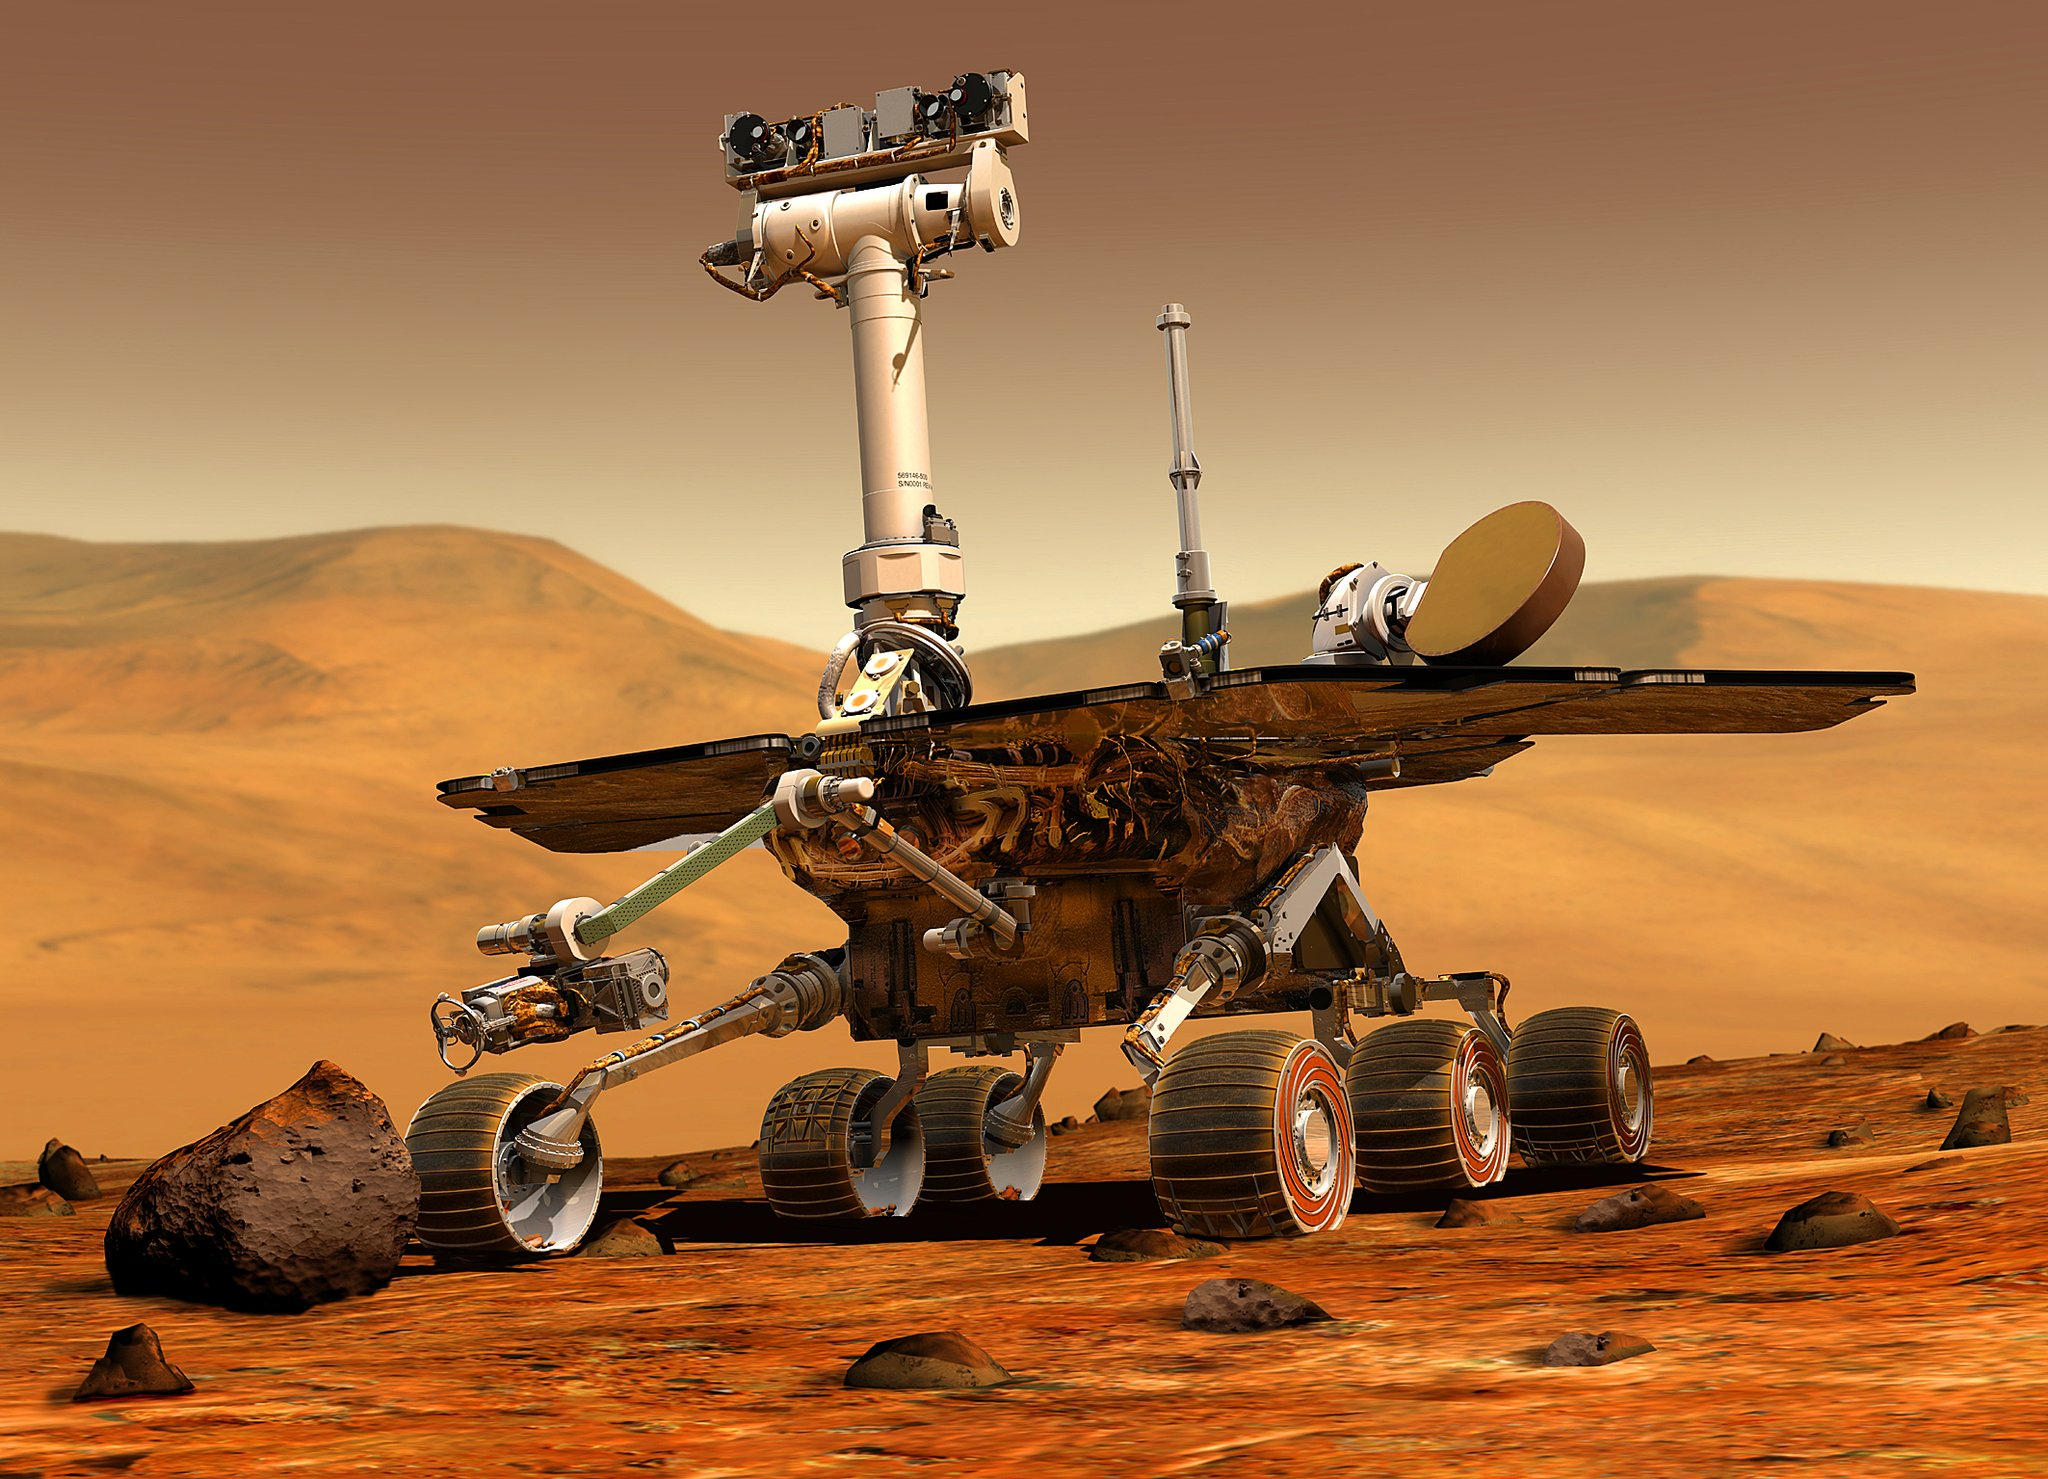 Opportunity Mars Rover